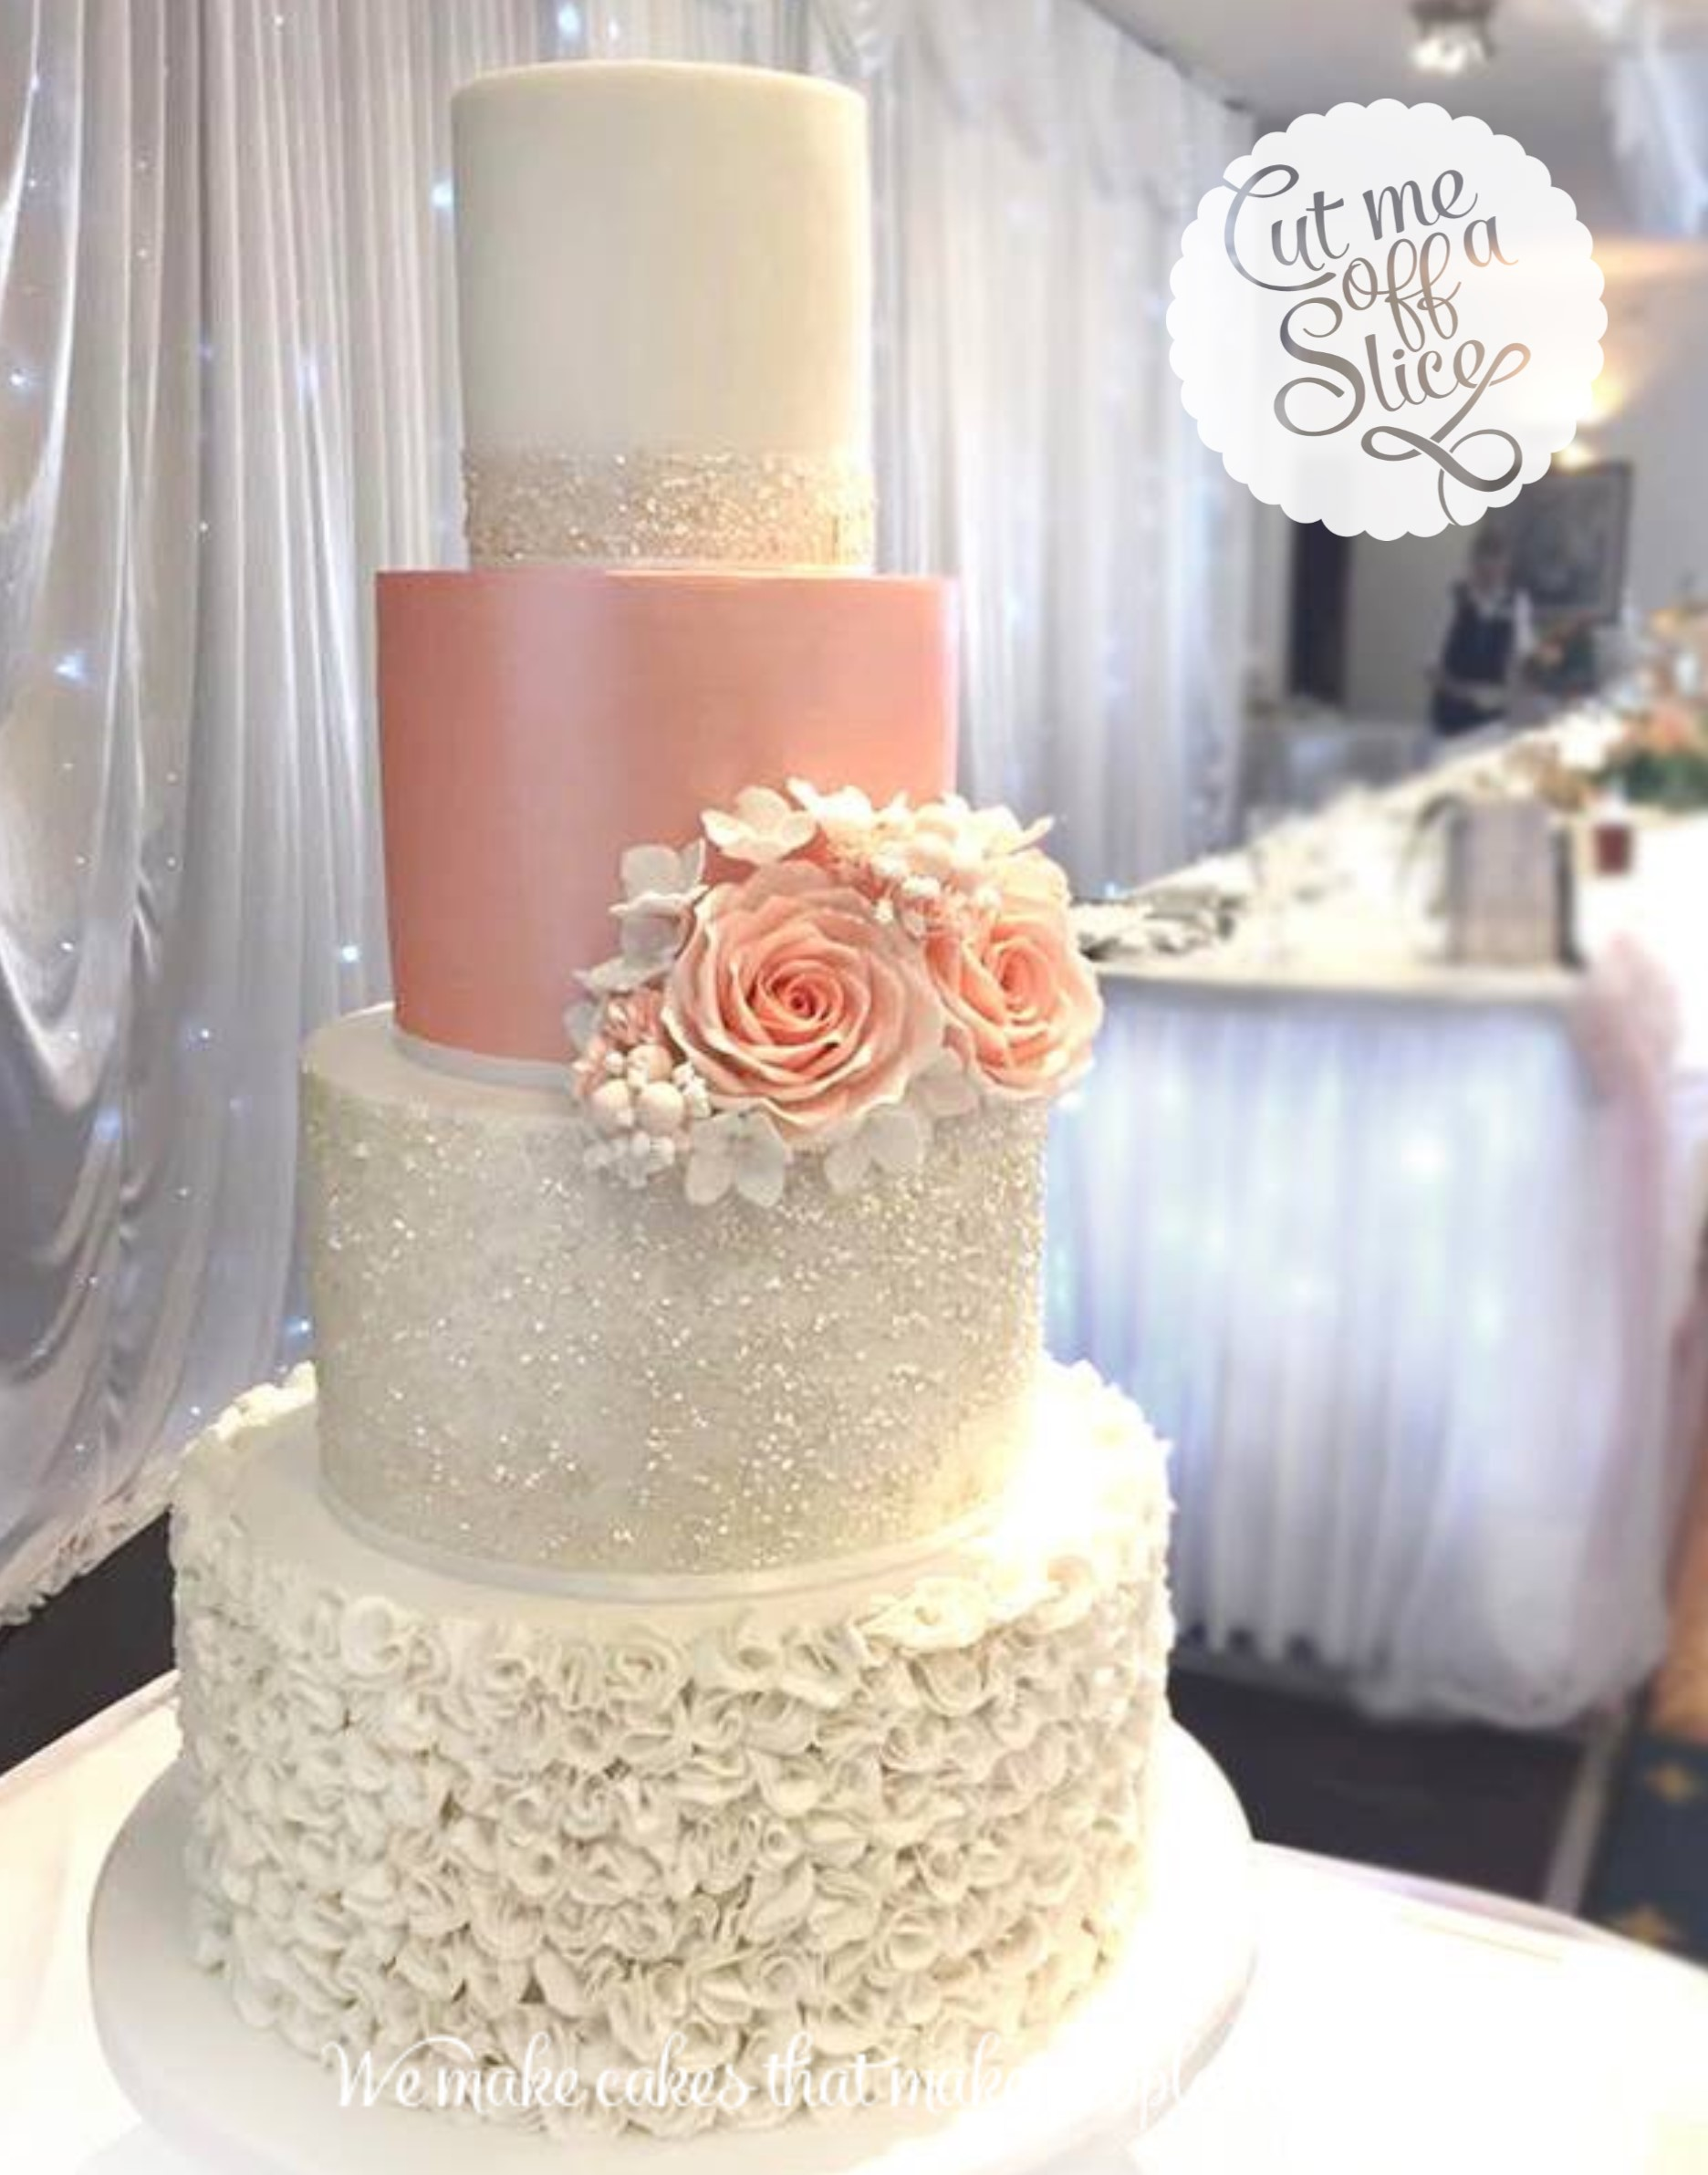 how to preserve wedding cake forever wedding cake inspiration from cut me a slice 16115